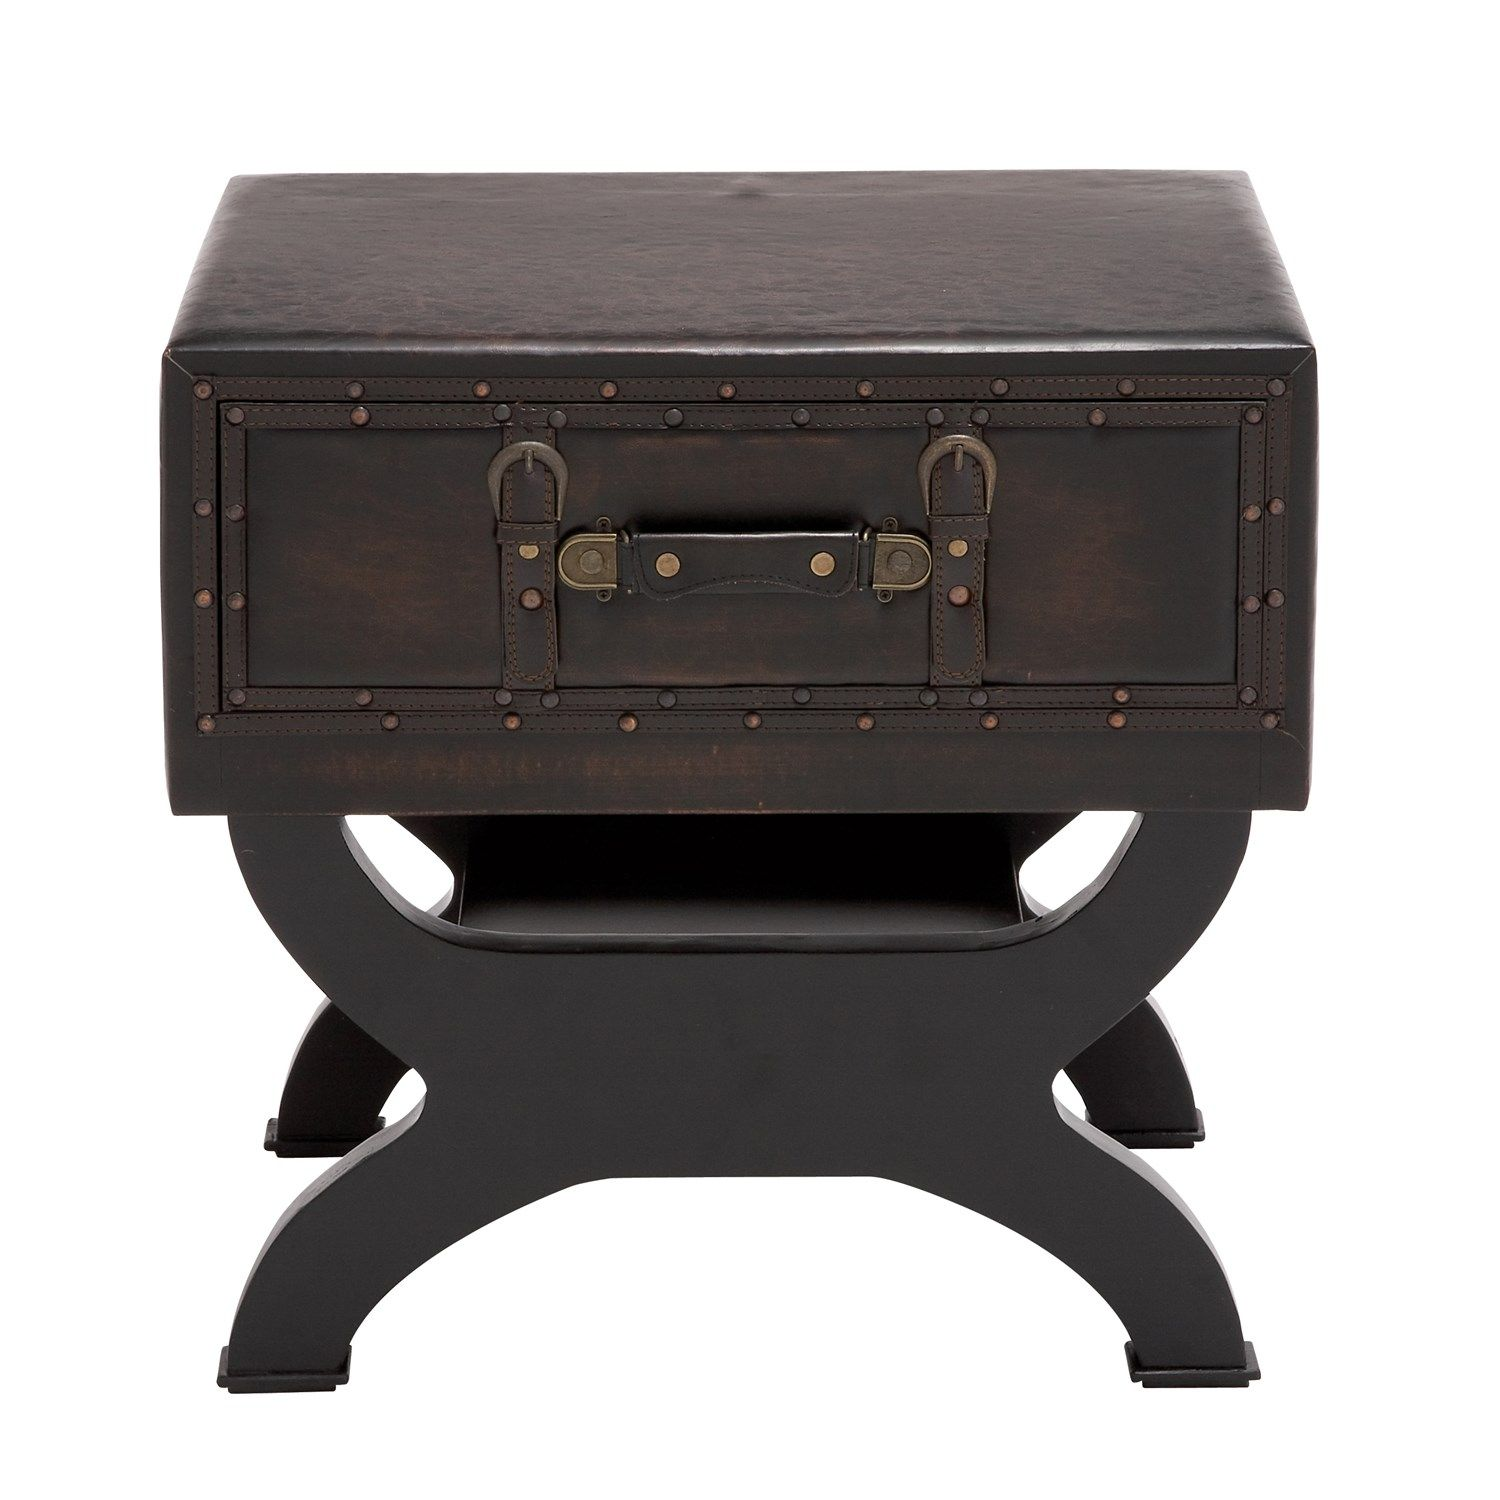 Woodland Imports 55744 The Sleek Wood Leather End Table Trunk